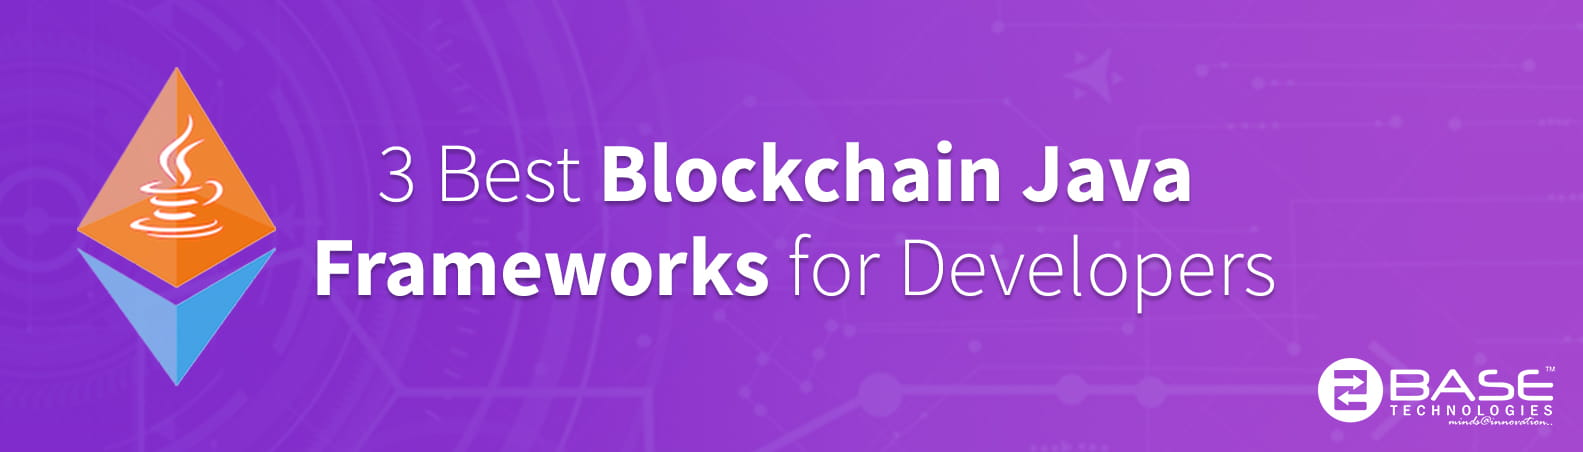 3 Best Blockchain Frameworks for Java Developers